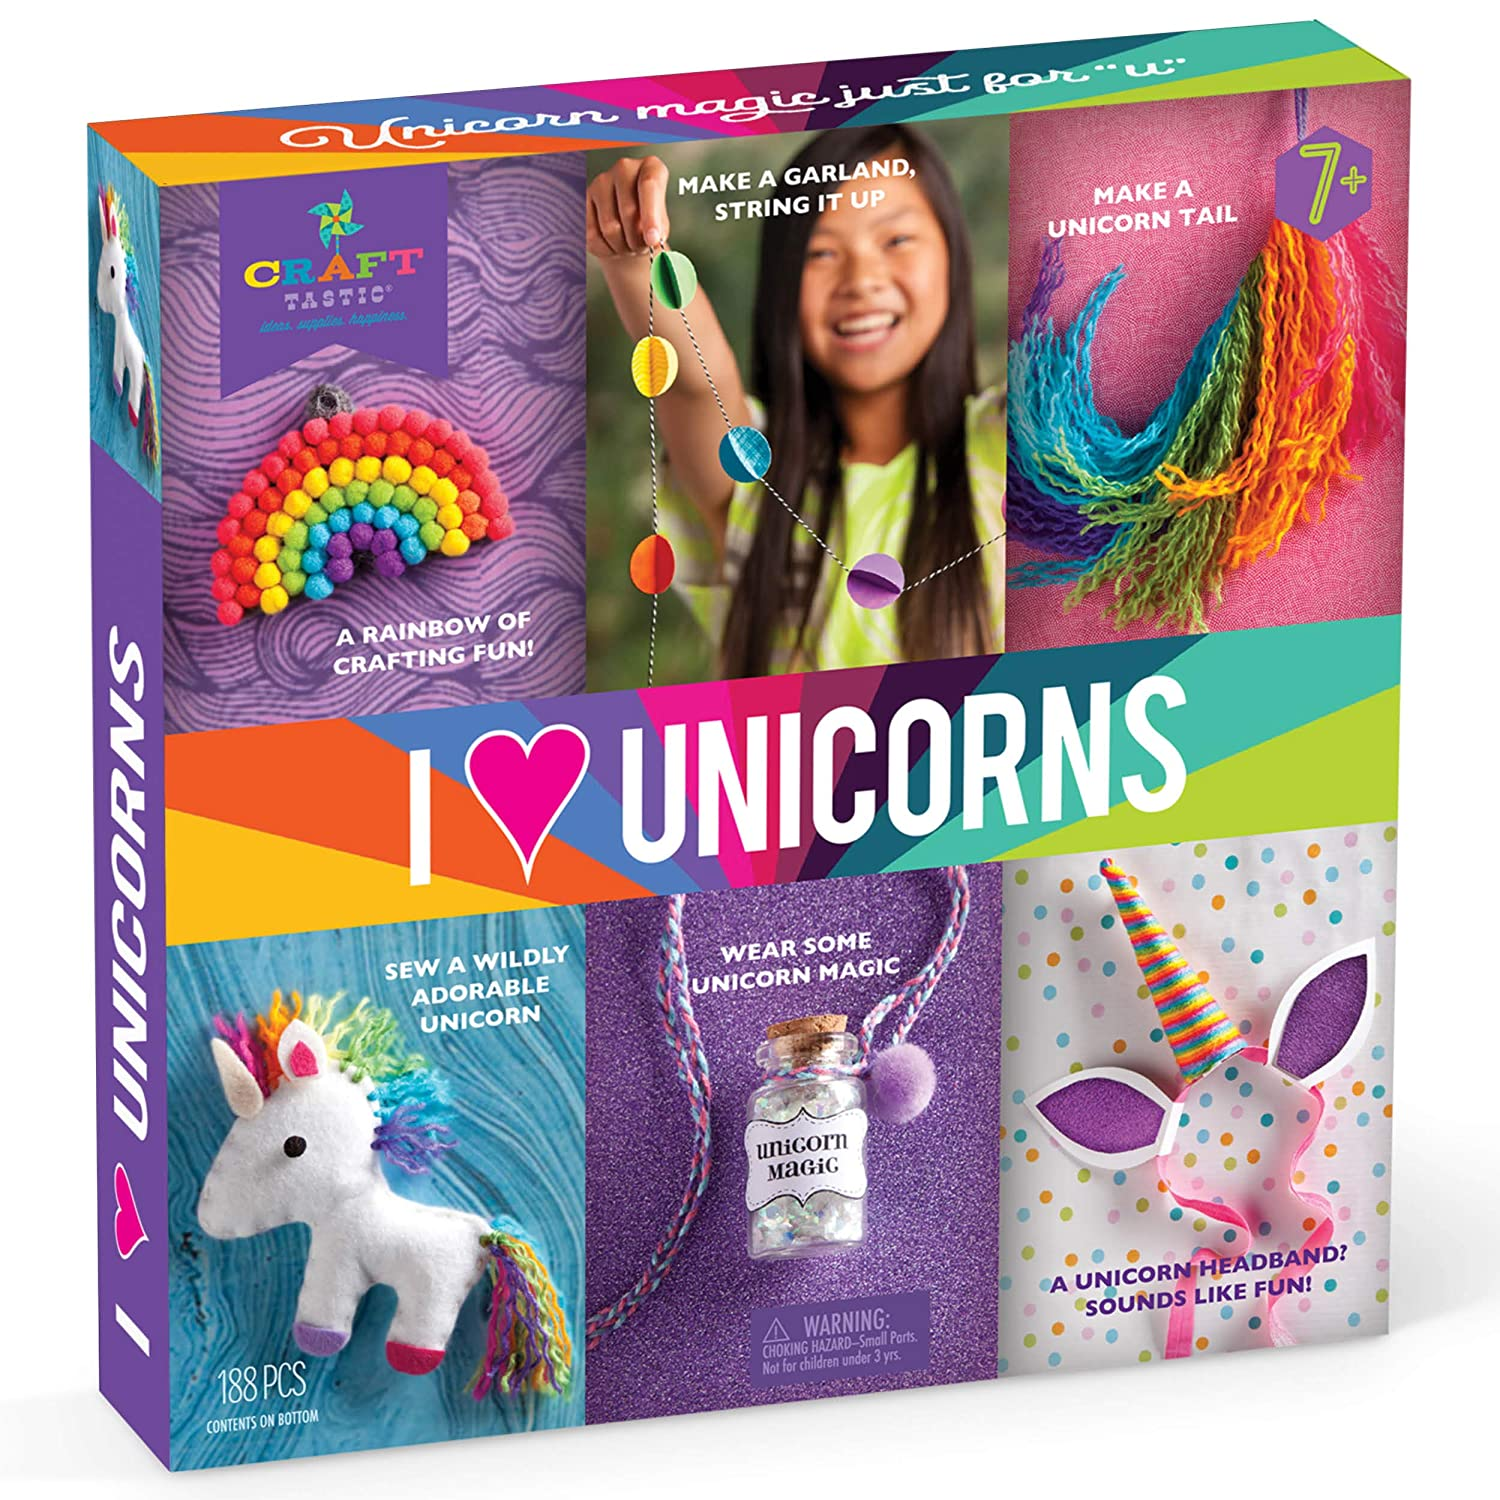 23 Best Unicorn Toys and Gifts for Girls Reviews of 2021 25